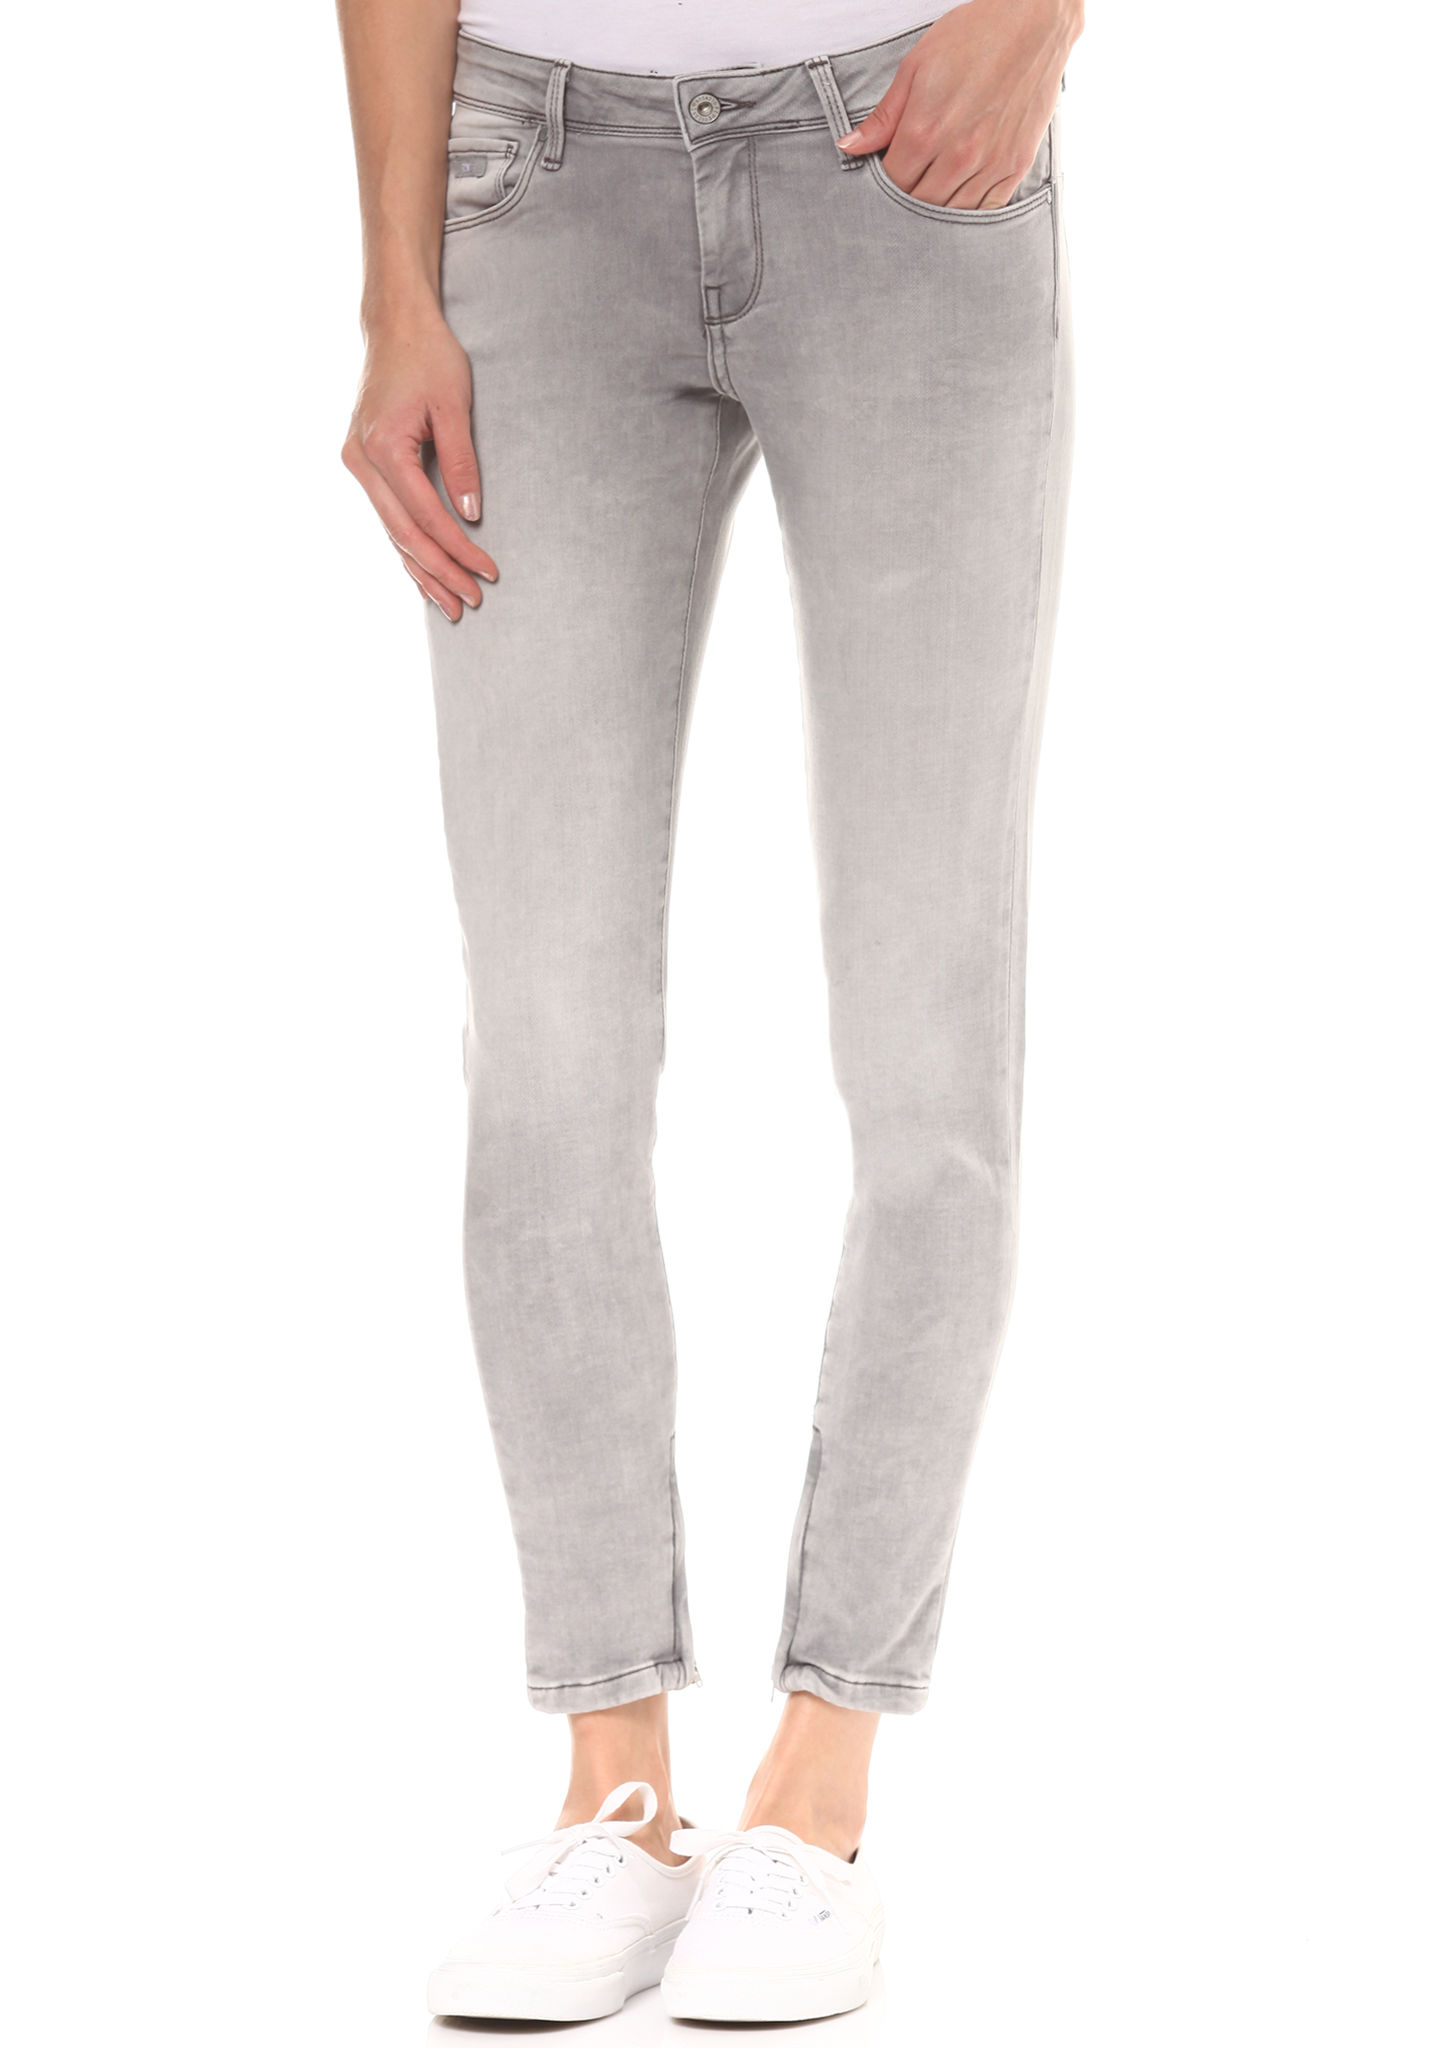 a4497c25d52b PEPE JEANS Cher - Denim Jeans for Women - Grey - Planet Sports